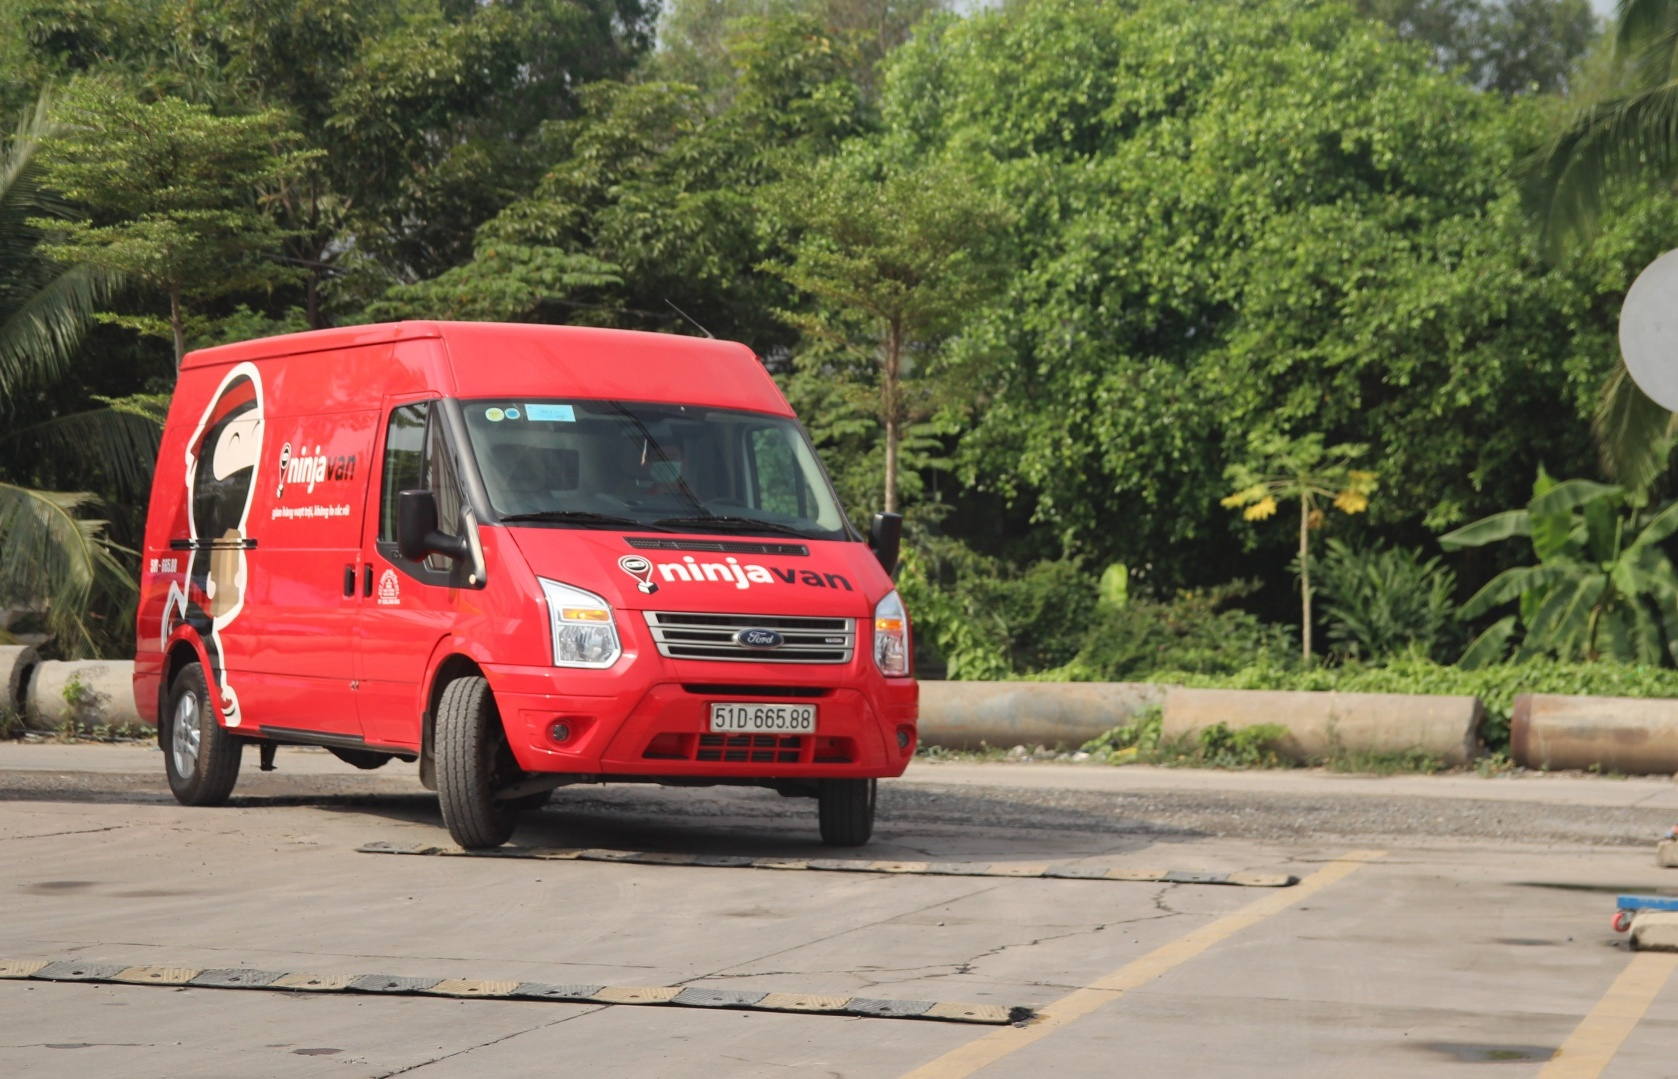 Ninja Van secures $578 million in a Series E funding round backed by Alibaba